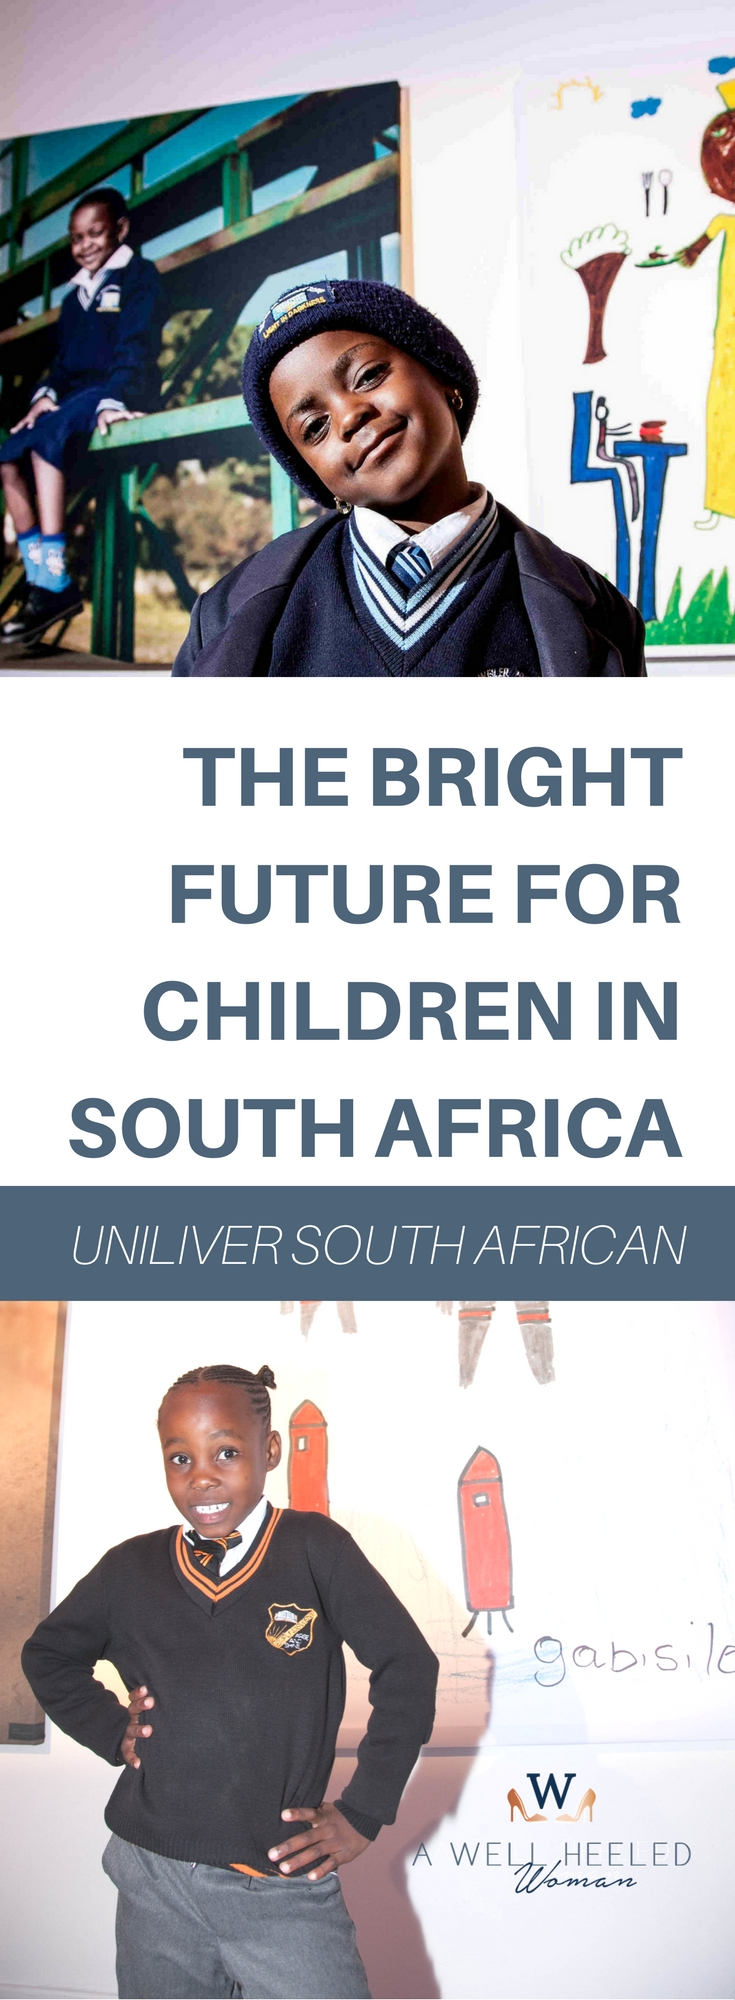 The Unilever Brightfuture programme. Unilver Brightfuture HeadersFinal Supporting the BrightFuture of South African children